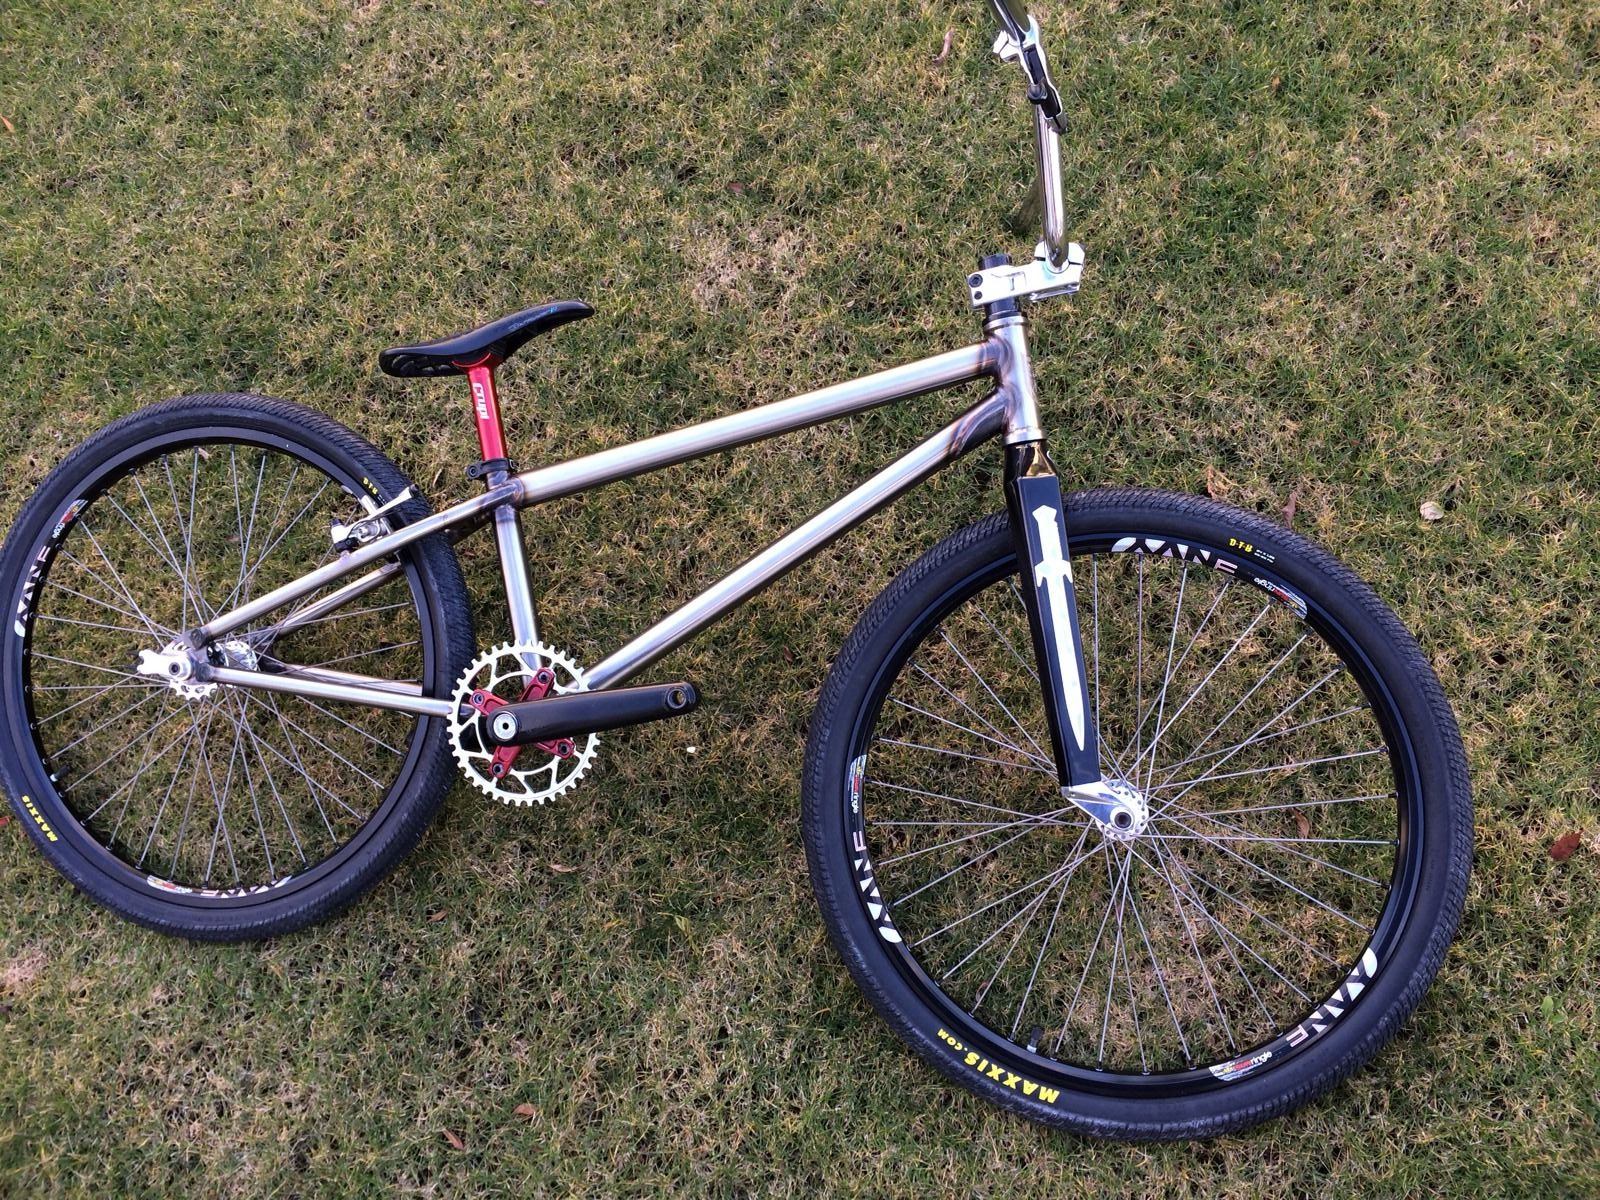 http://uploads.bmxmuseum.com/user-images/8049/_575c47c523d5.jpg